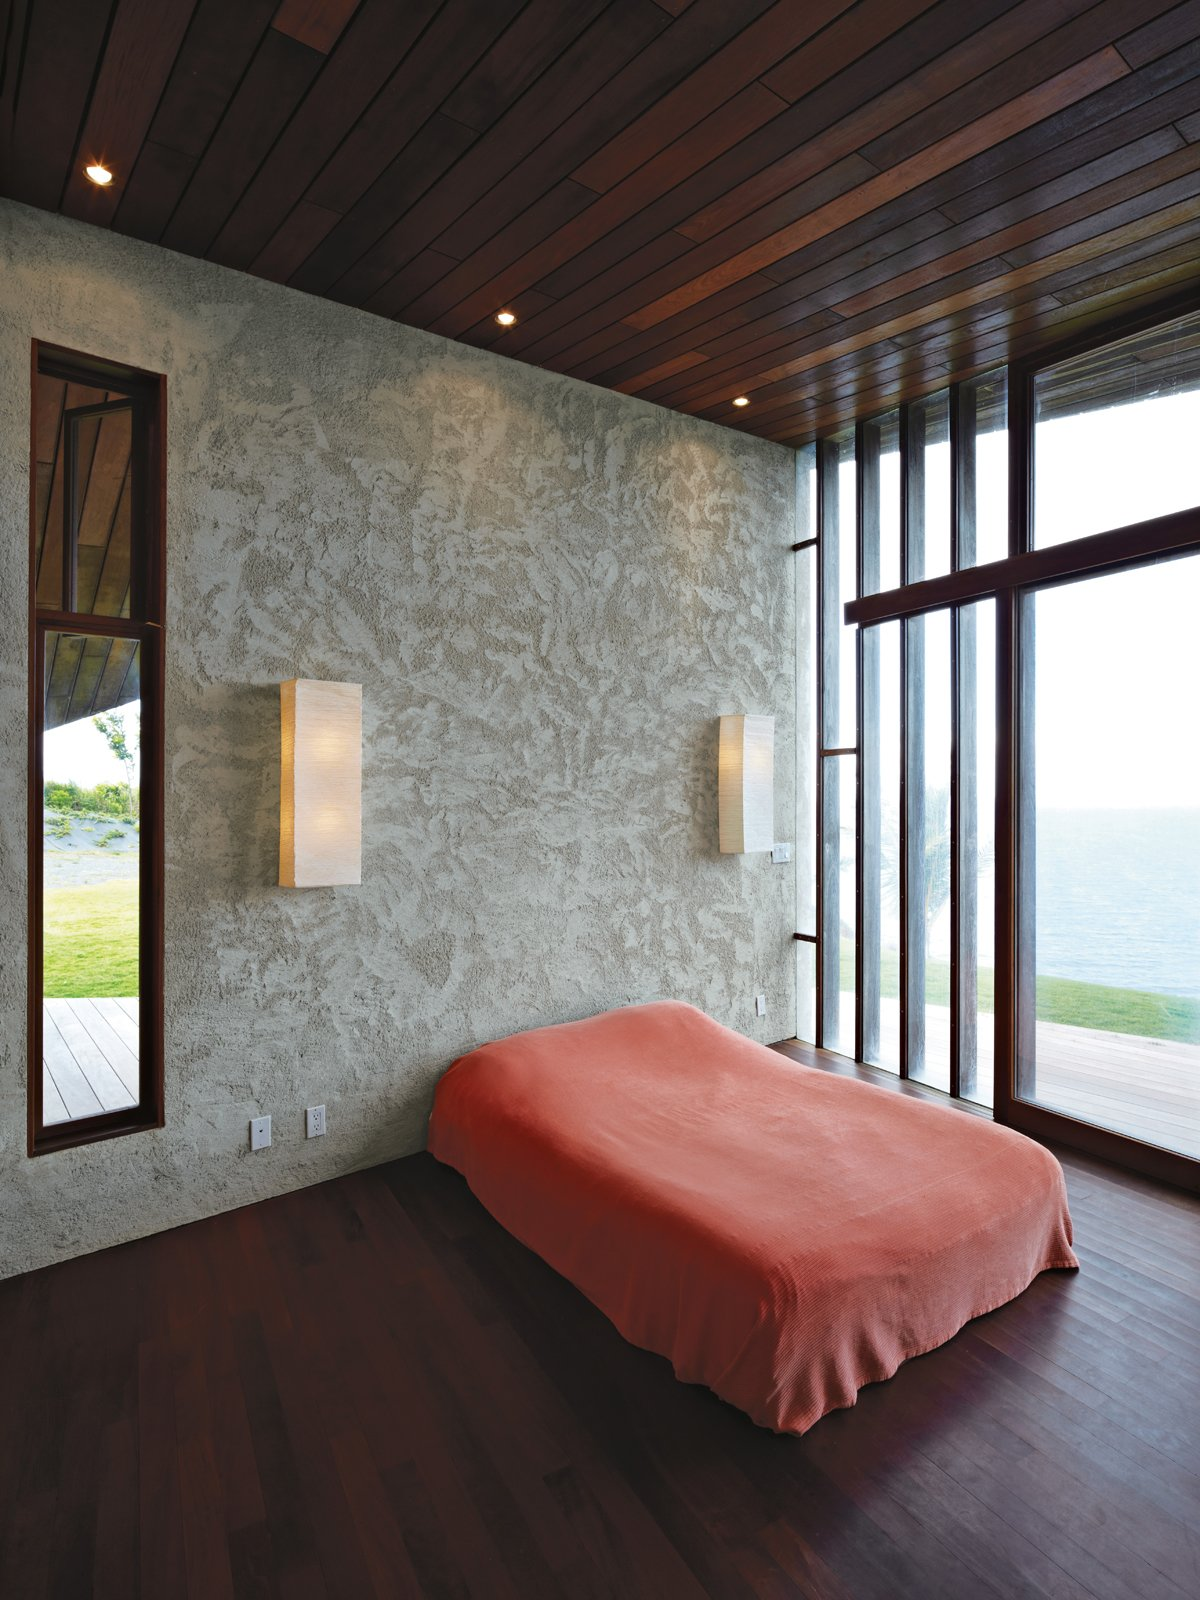 Bedroom, Bed, Dark Hardwood Floor, and Wall Lighting In the master bedroom, a basic platform bed and Ikea wall lights keep the attention on the ocean views afforded by the floor-to-ceiling windows.  Photo 9 of 10 in Clifftop House with Angled Roof in Maui